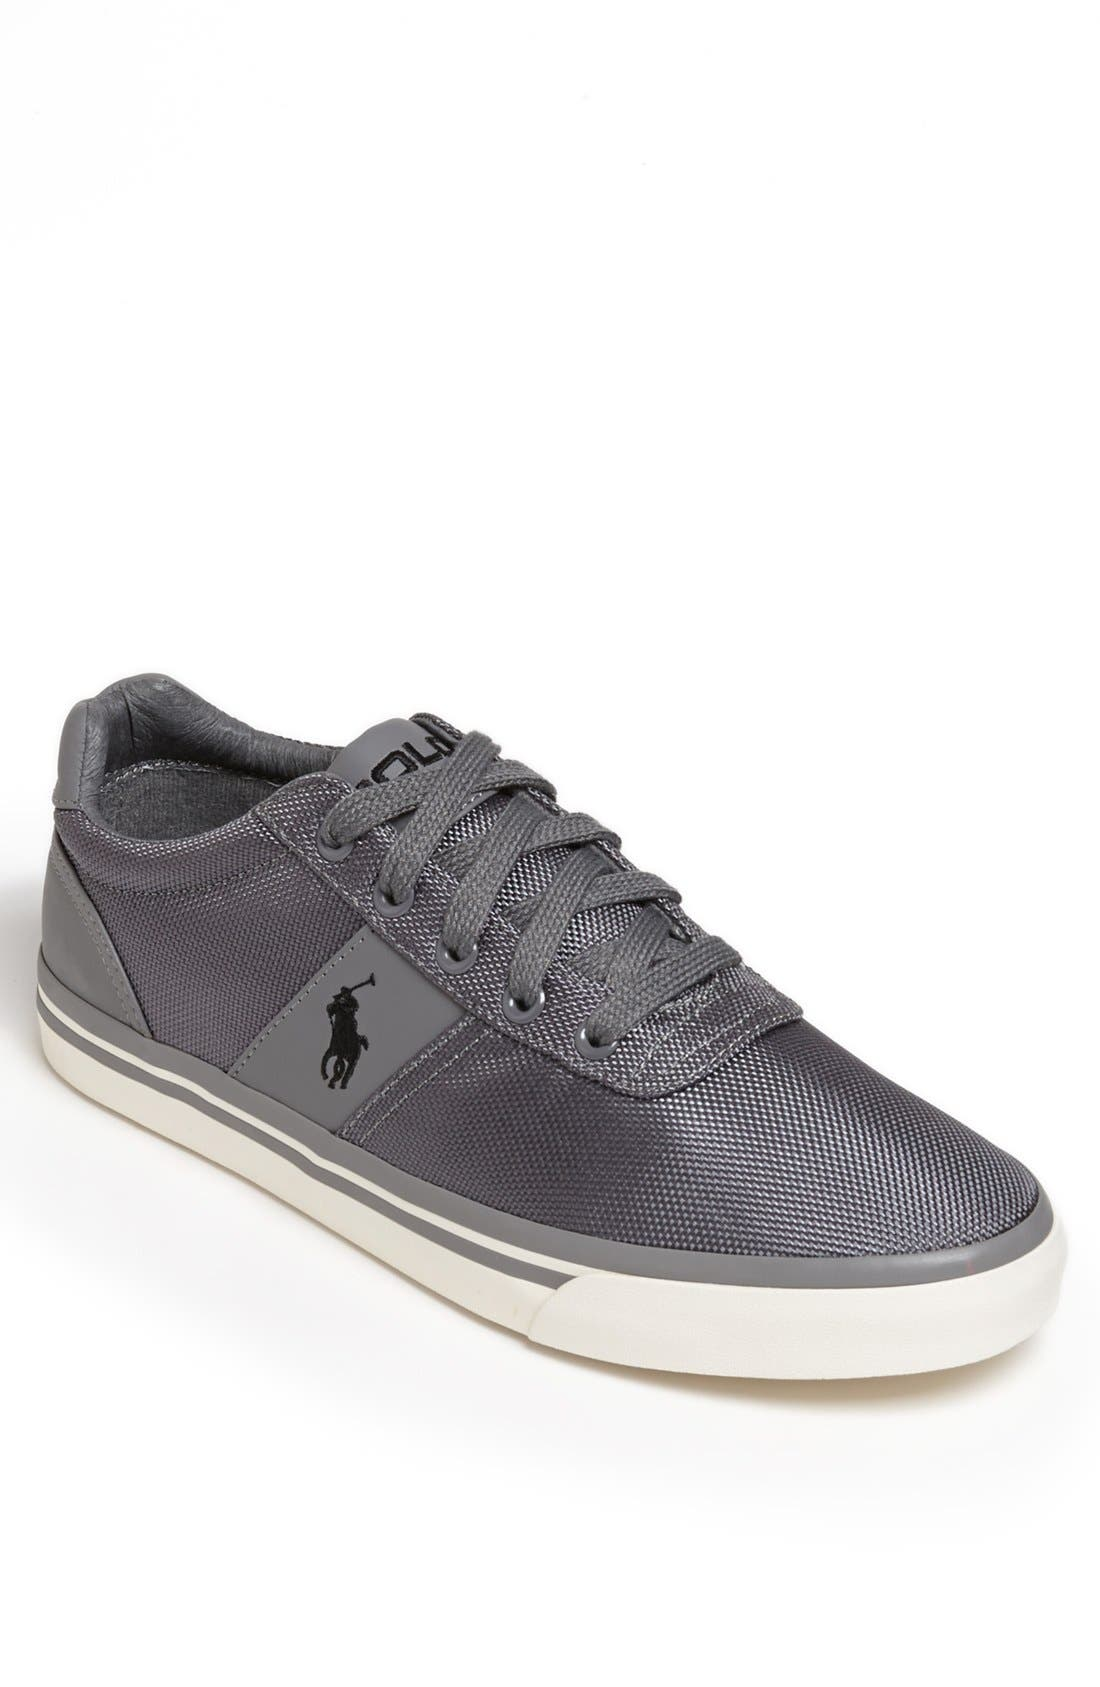 Main Image - Polo Ralph Lauren 'Hanford' Sneaker (Men)